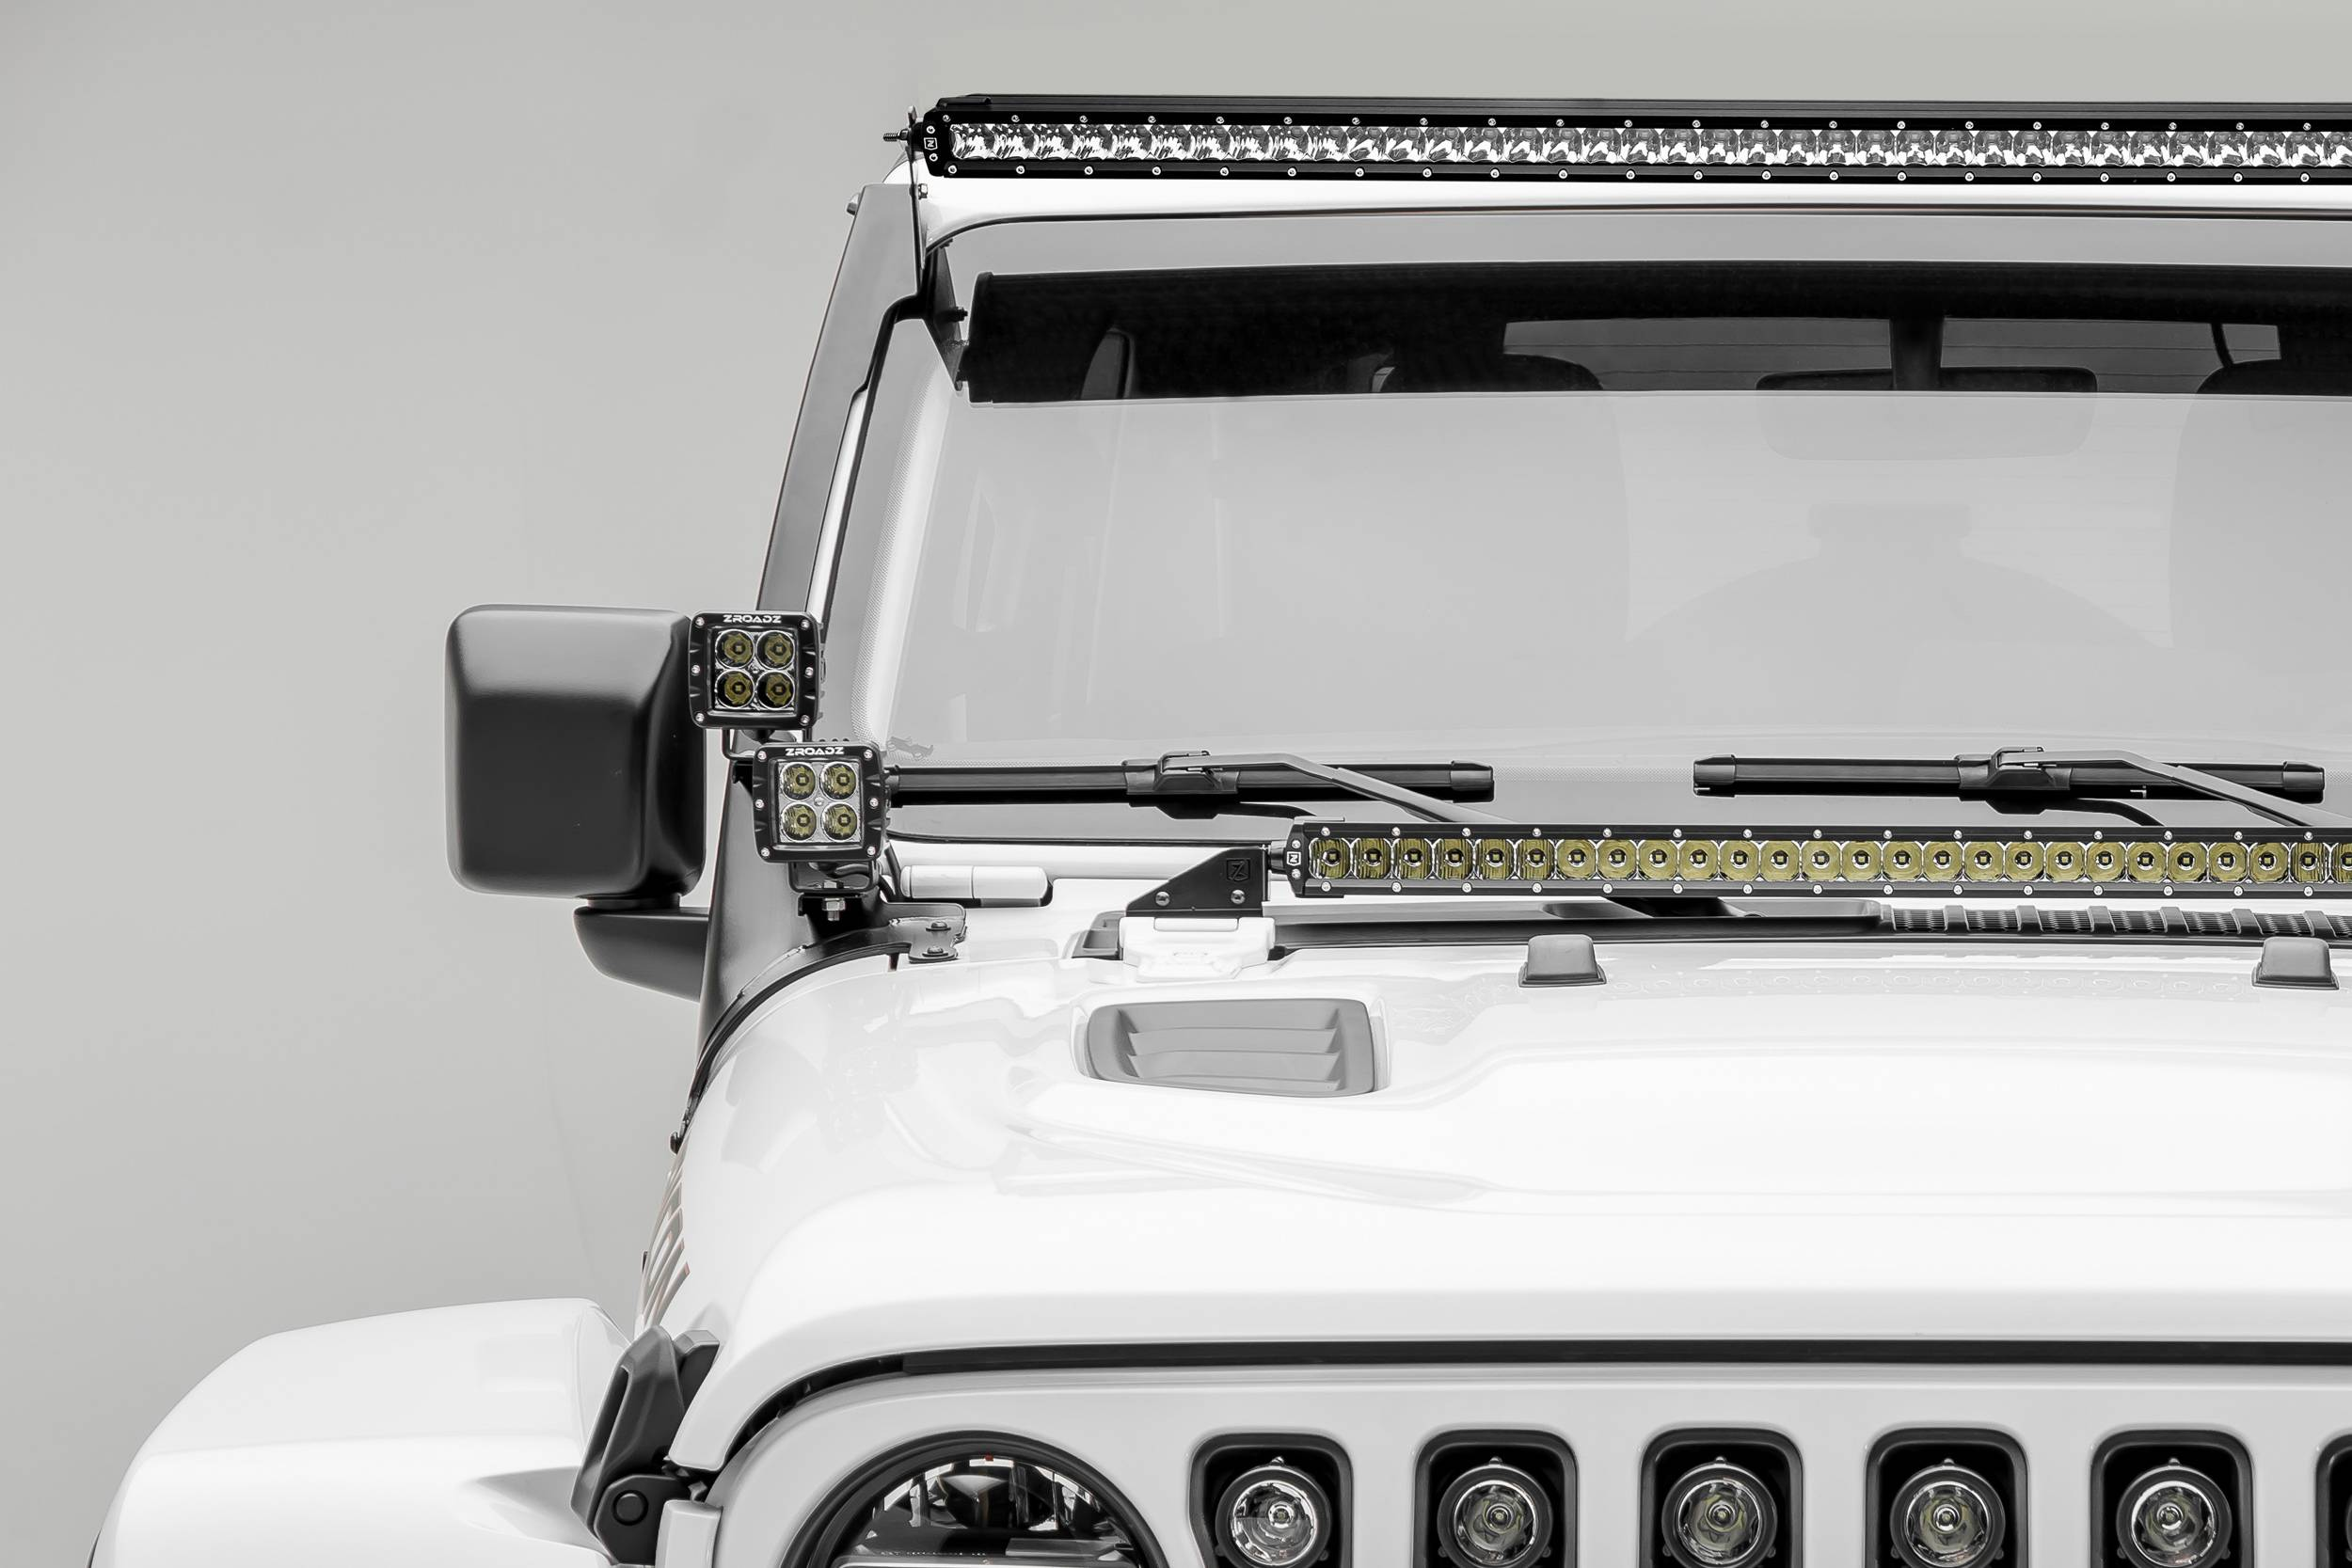 2018-2019 Jeep JL Front Roof LED Kit, Incl. (1) 50 Inch LED Straight Single Row Slim Light Bar and (4) 3 Inch LED Pod Lights - PN #Z374631-KIT4